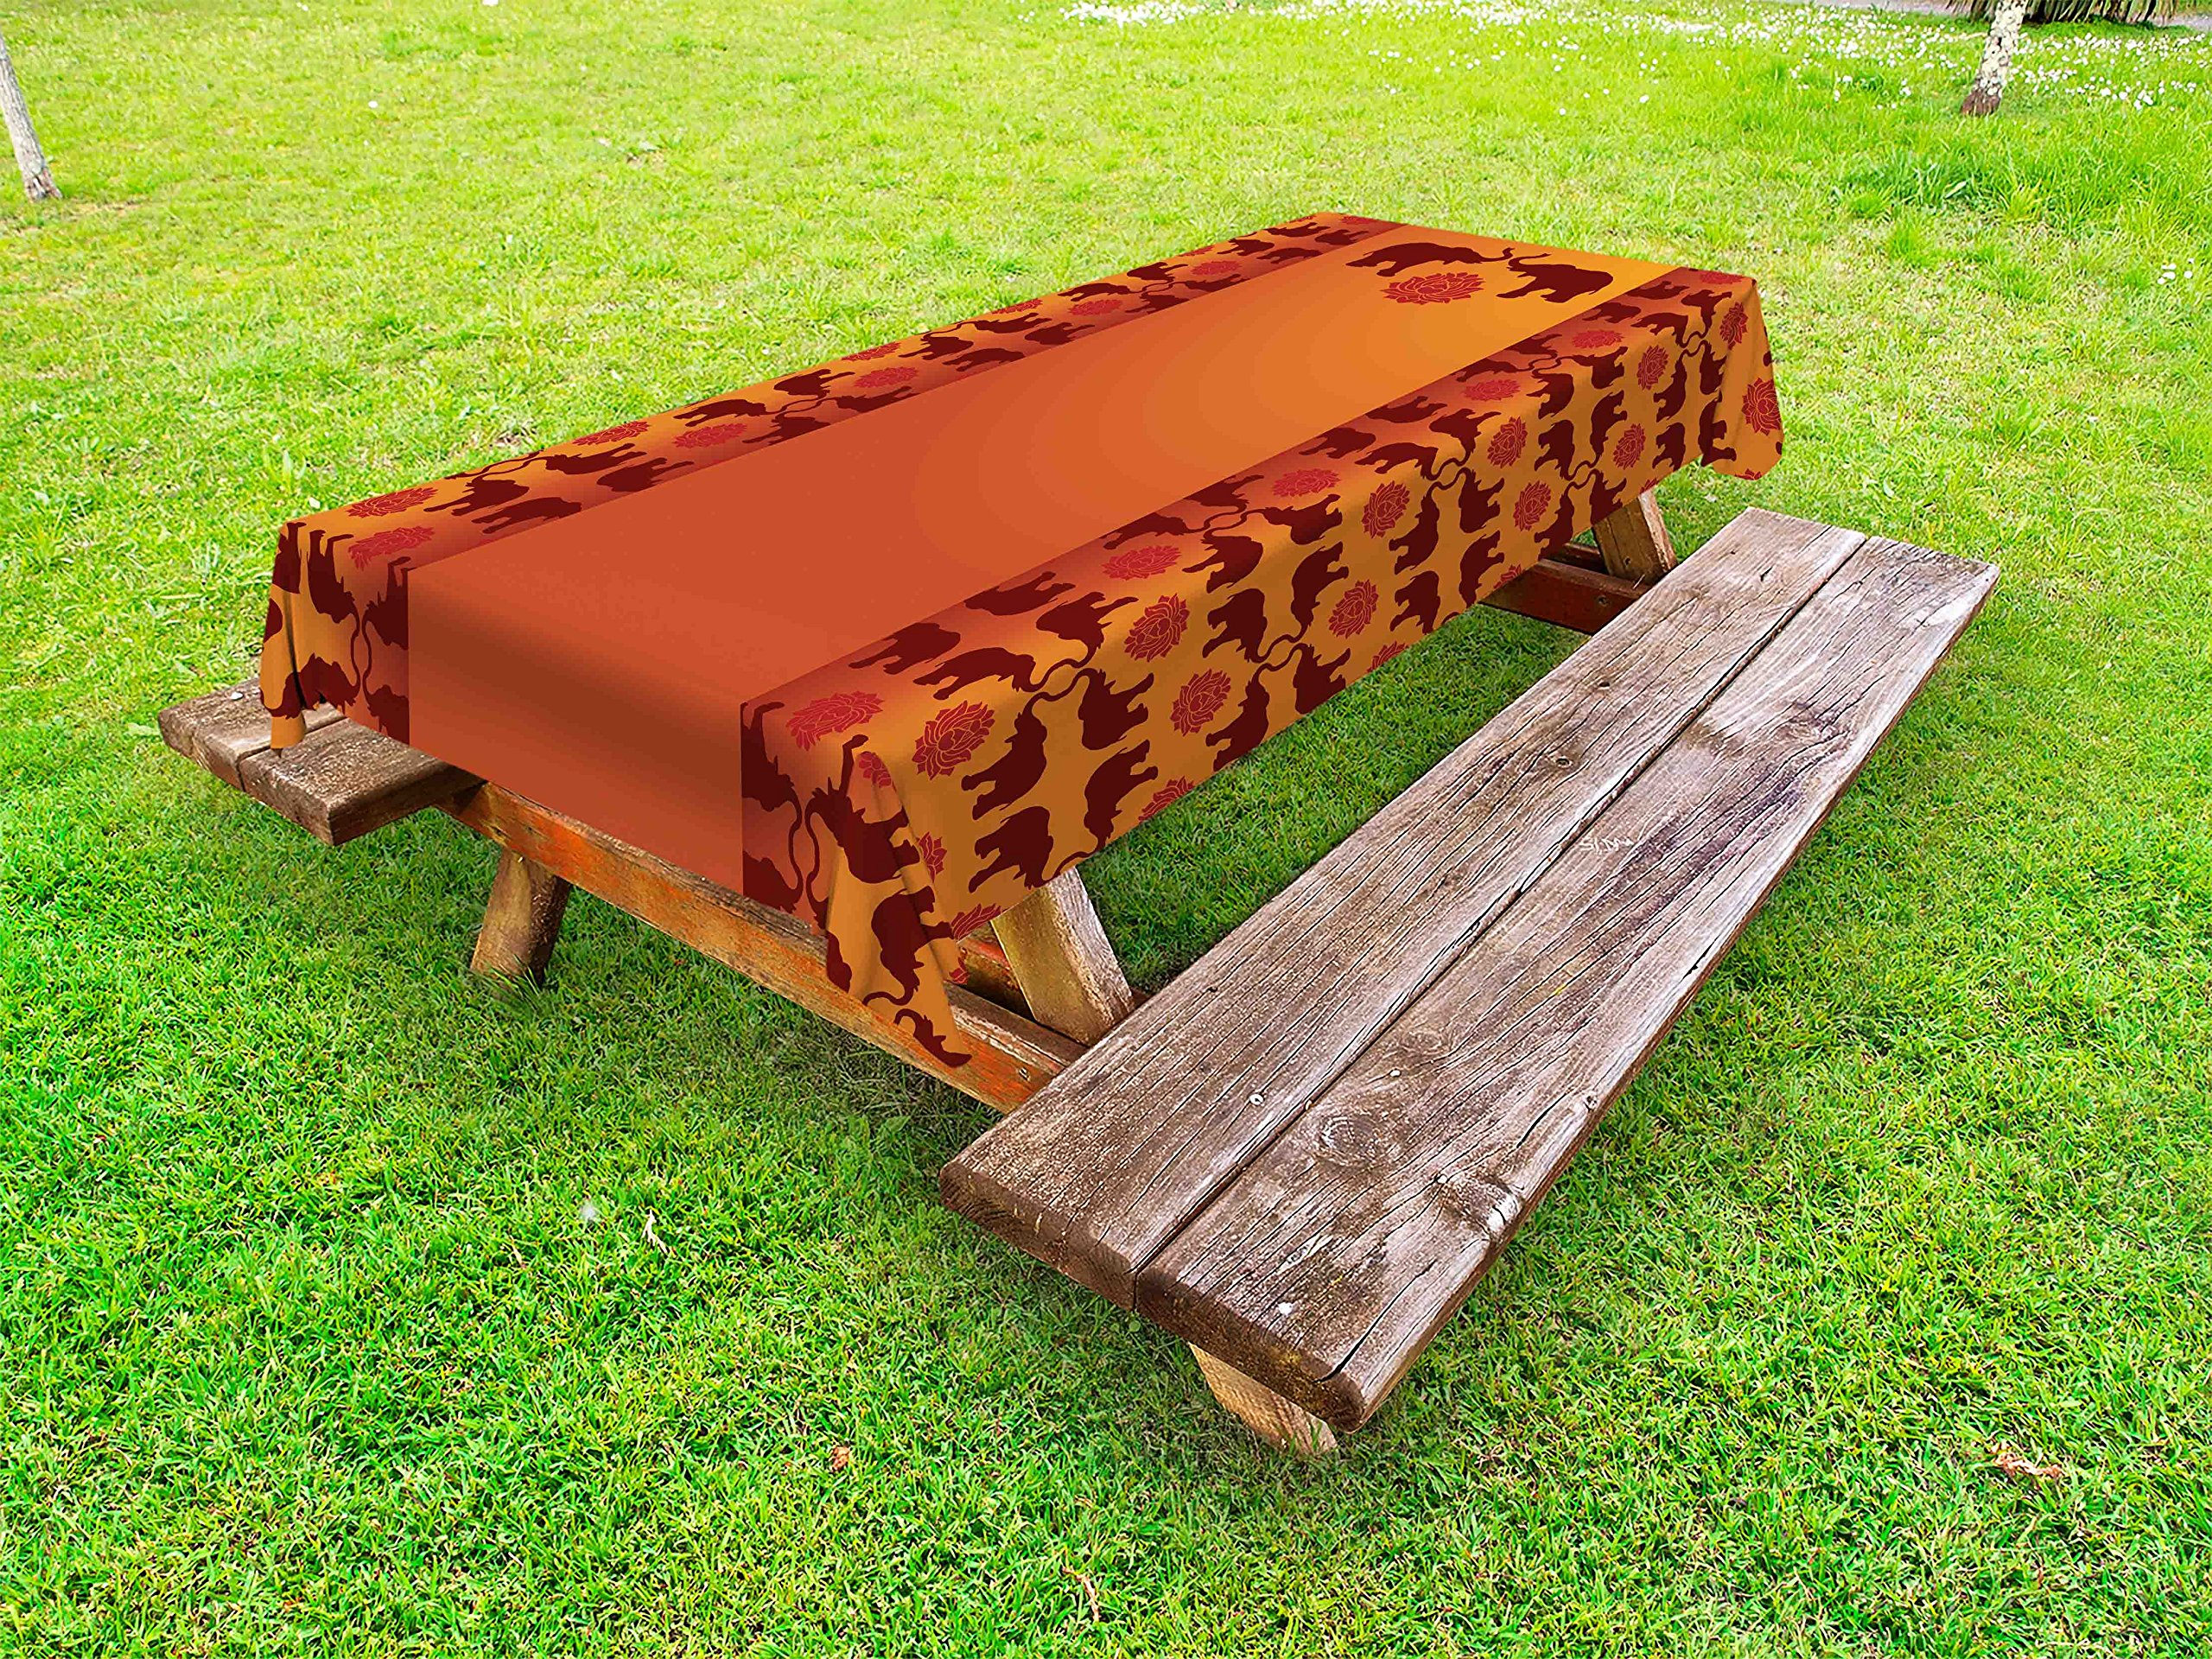 Lunarable Ethnic Outdoor Tablecloth, African Safari Animal Elephant with Tribal Ethnic Details Ombre Art, Decorative Washable Picnic Table Cloth, 58 X 84 inches, Orange Burgundy and Red